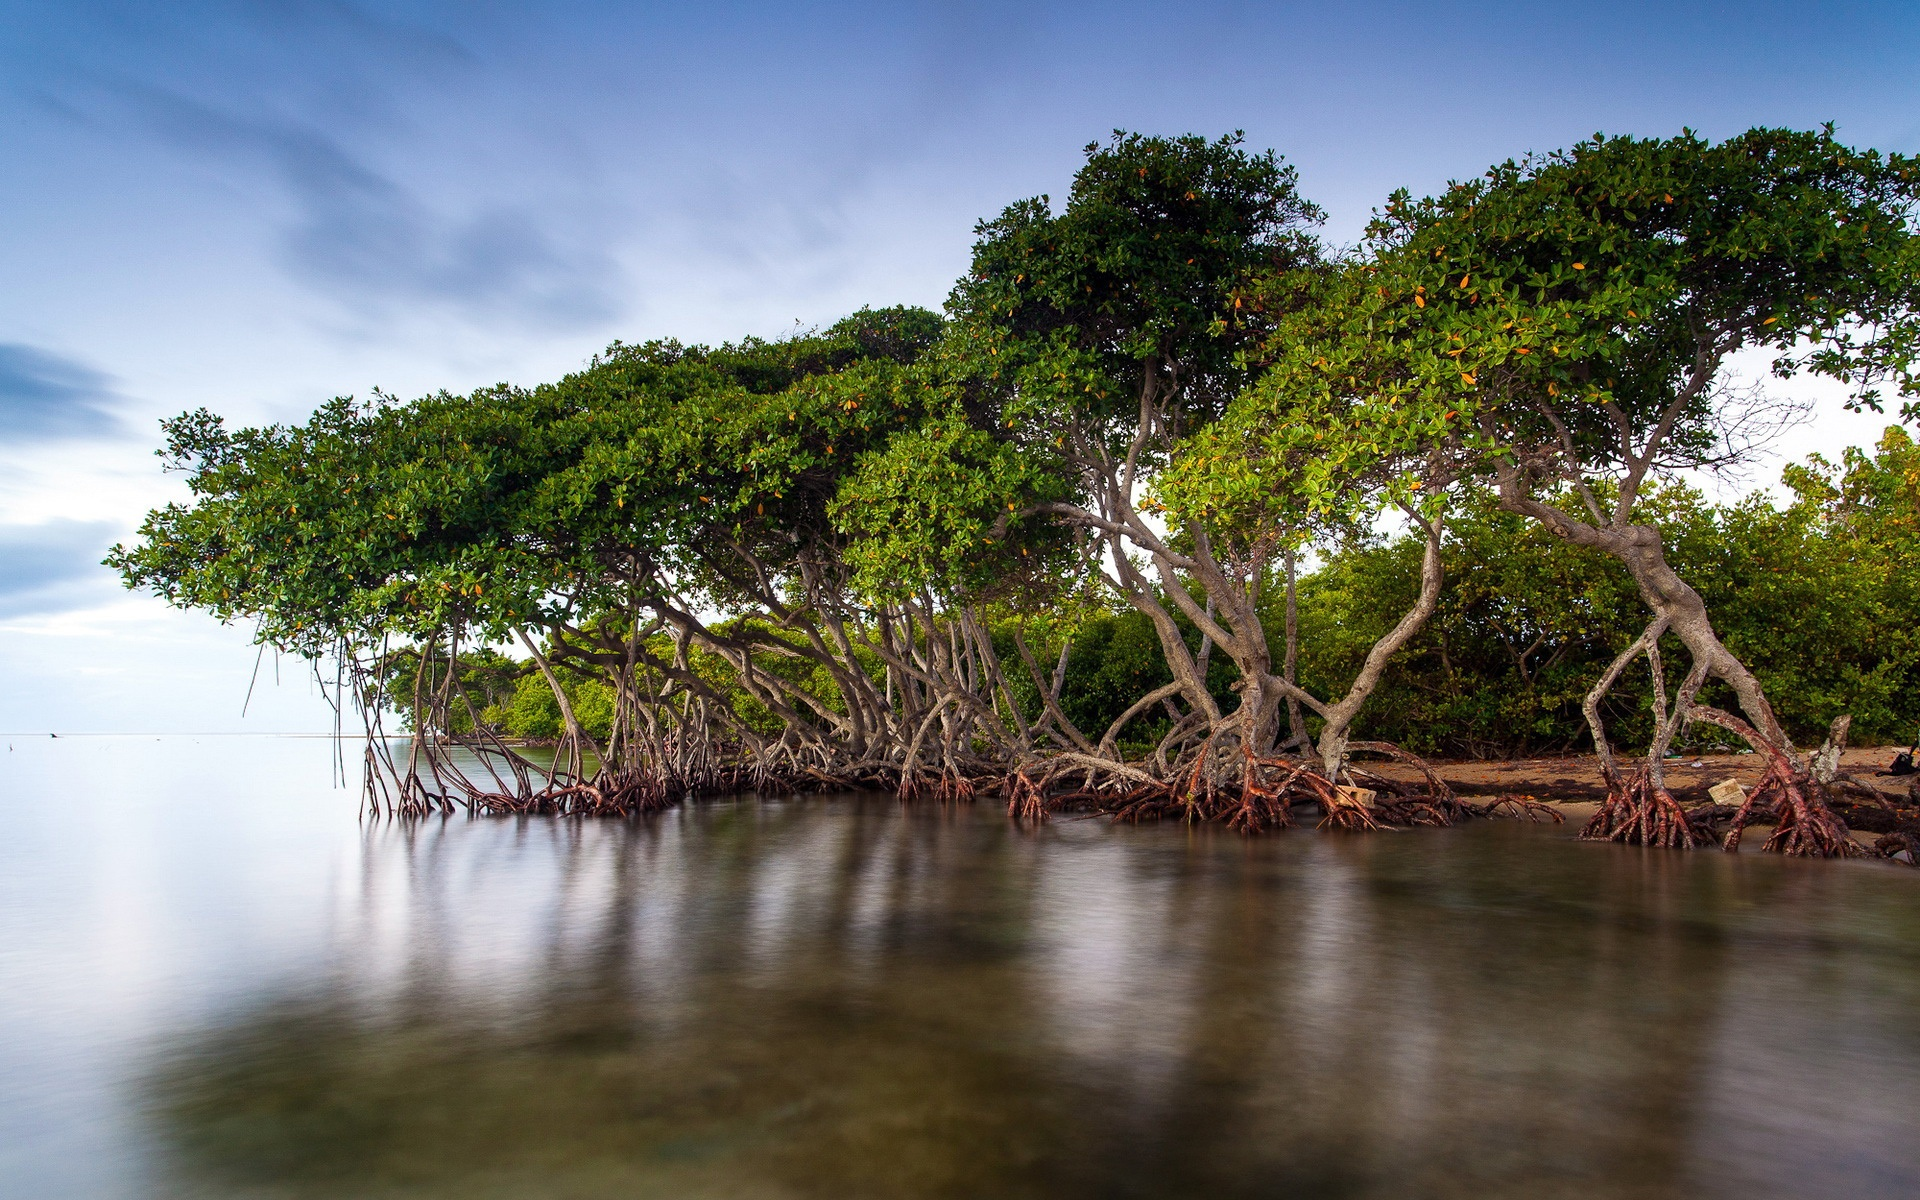 The mangrove forests of the lake scenery 1920x1200 - NNN